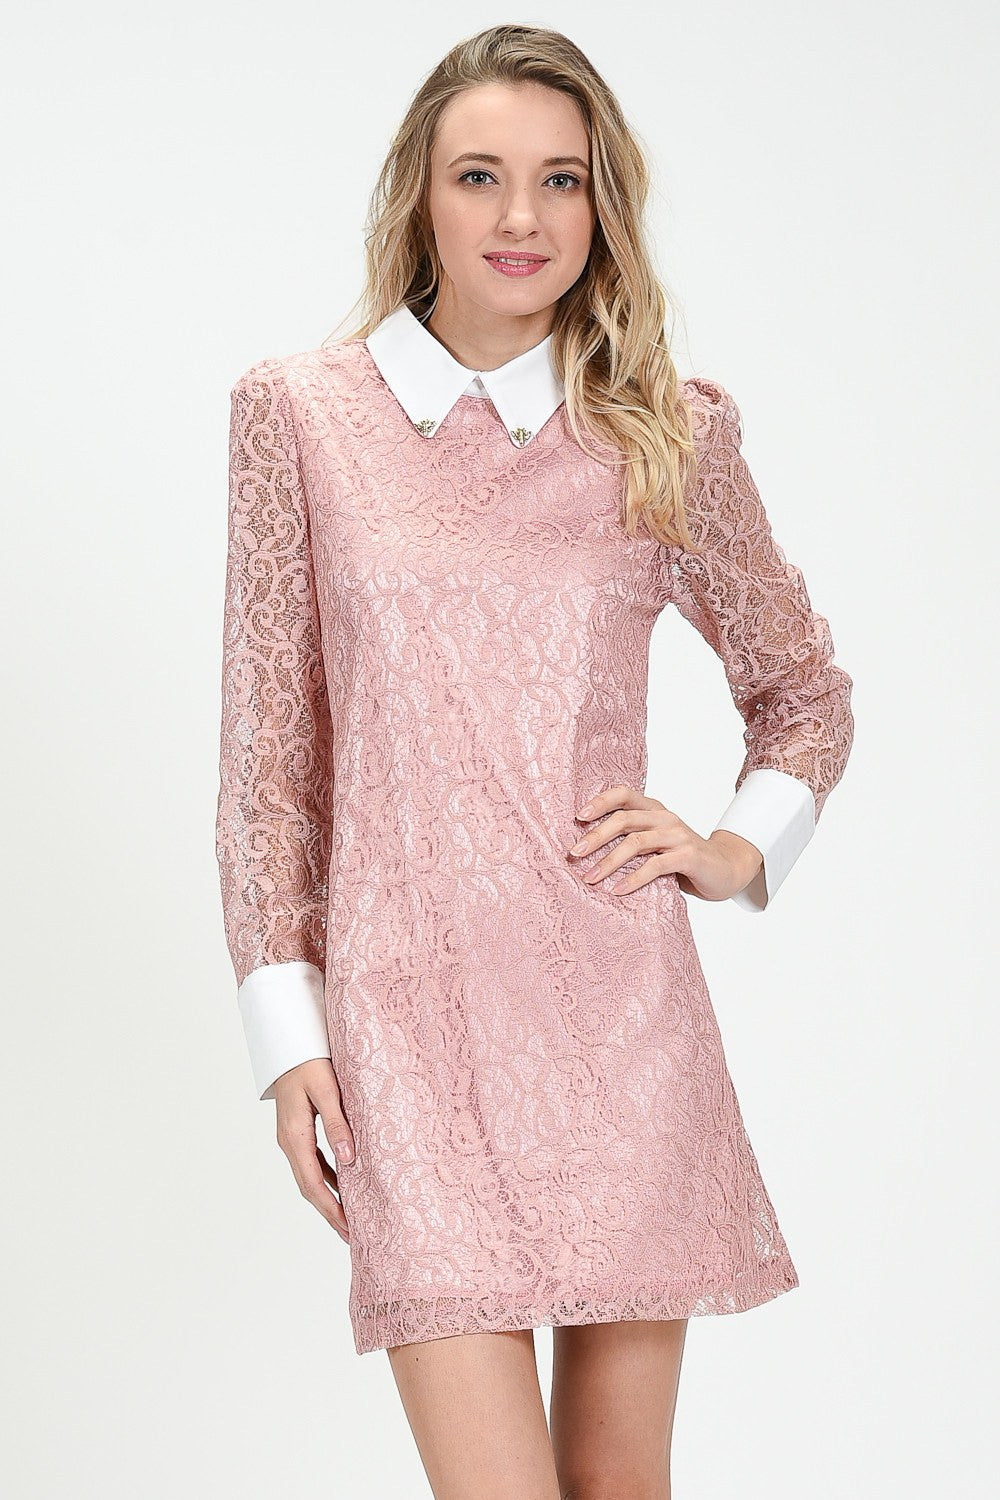 Instant Crush Rabbit Dress by Sister Jane